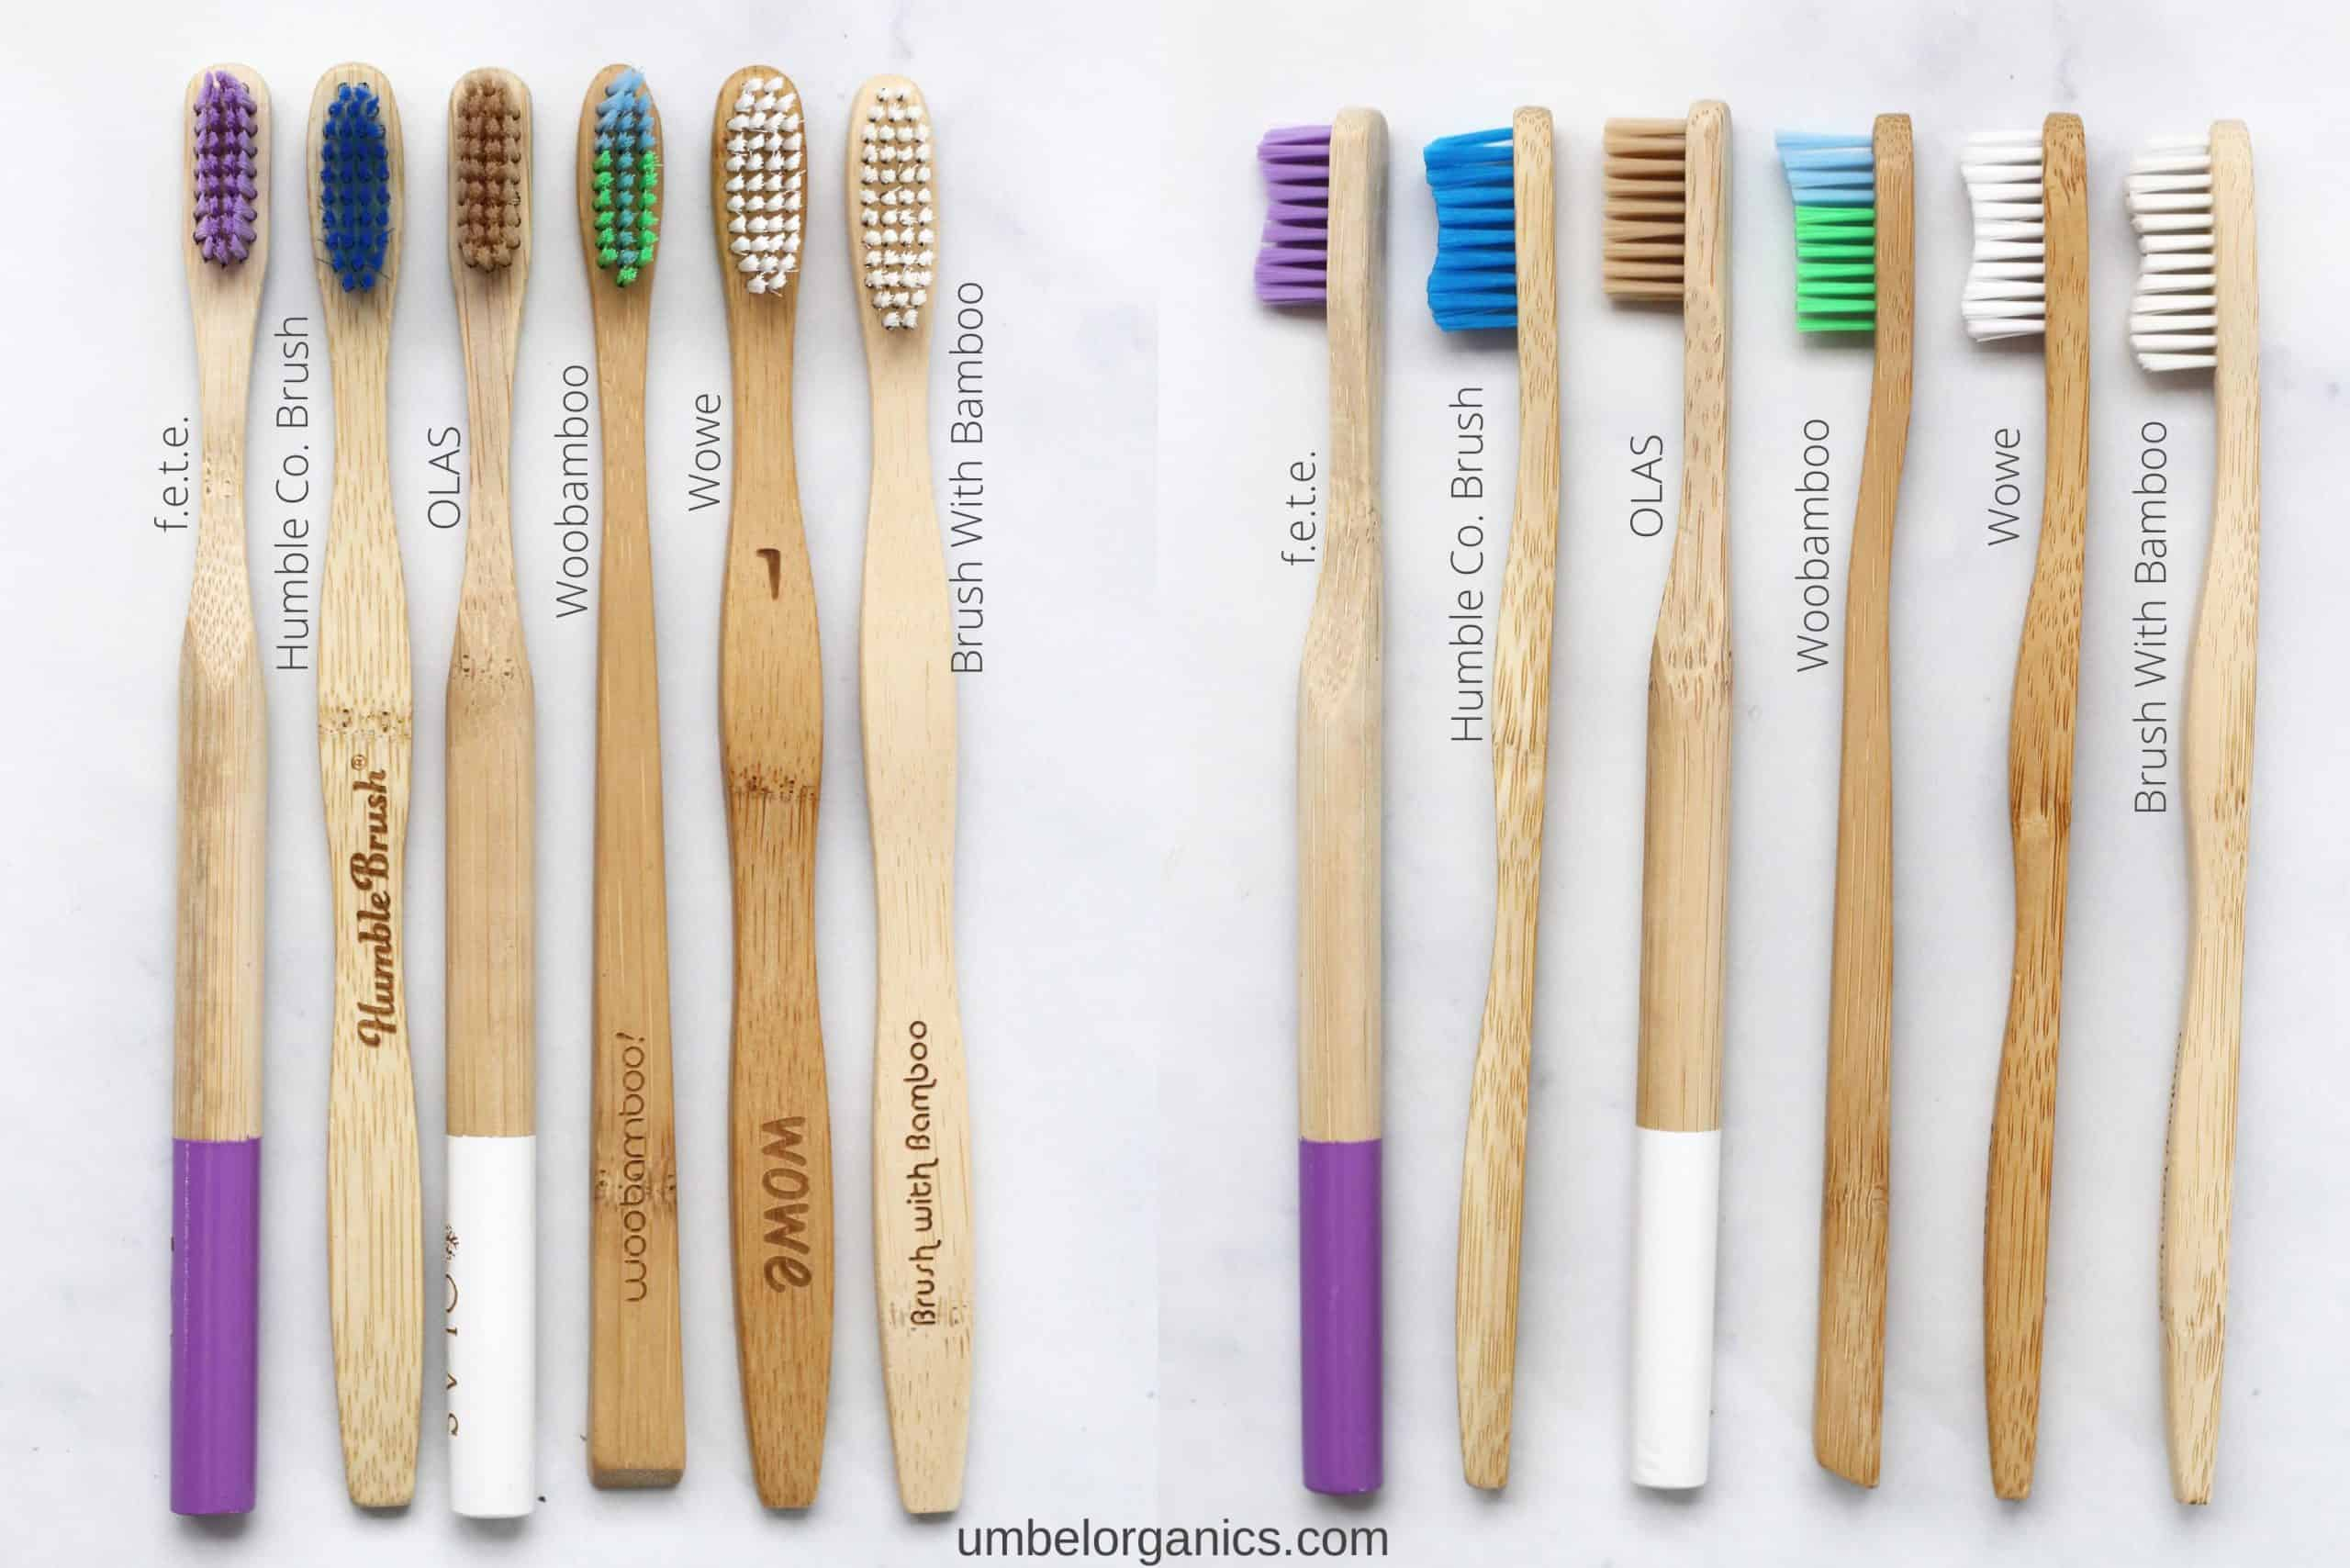 6 Brands of Bamboo Toothbrushes